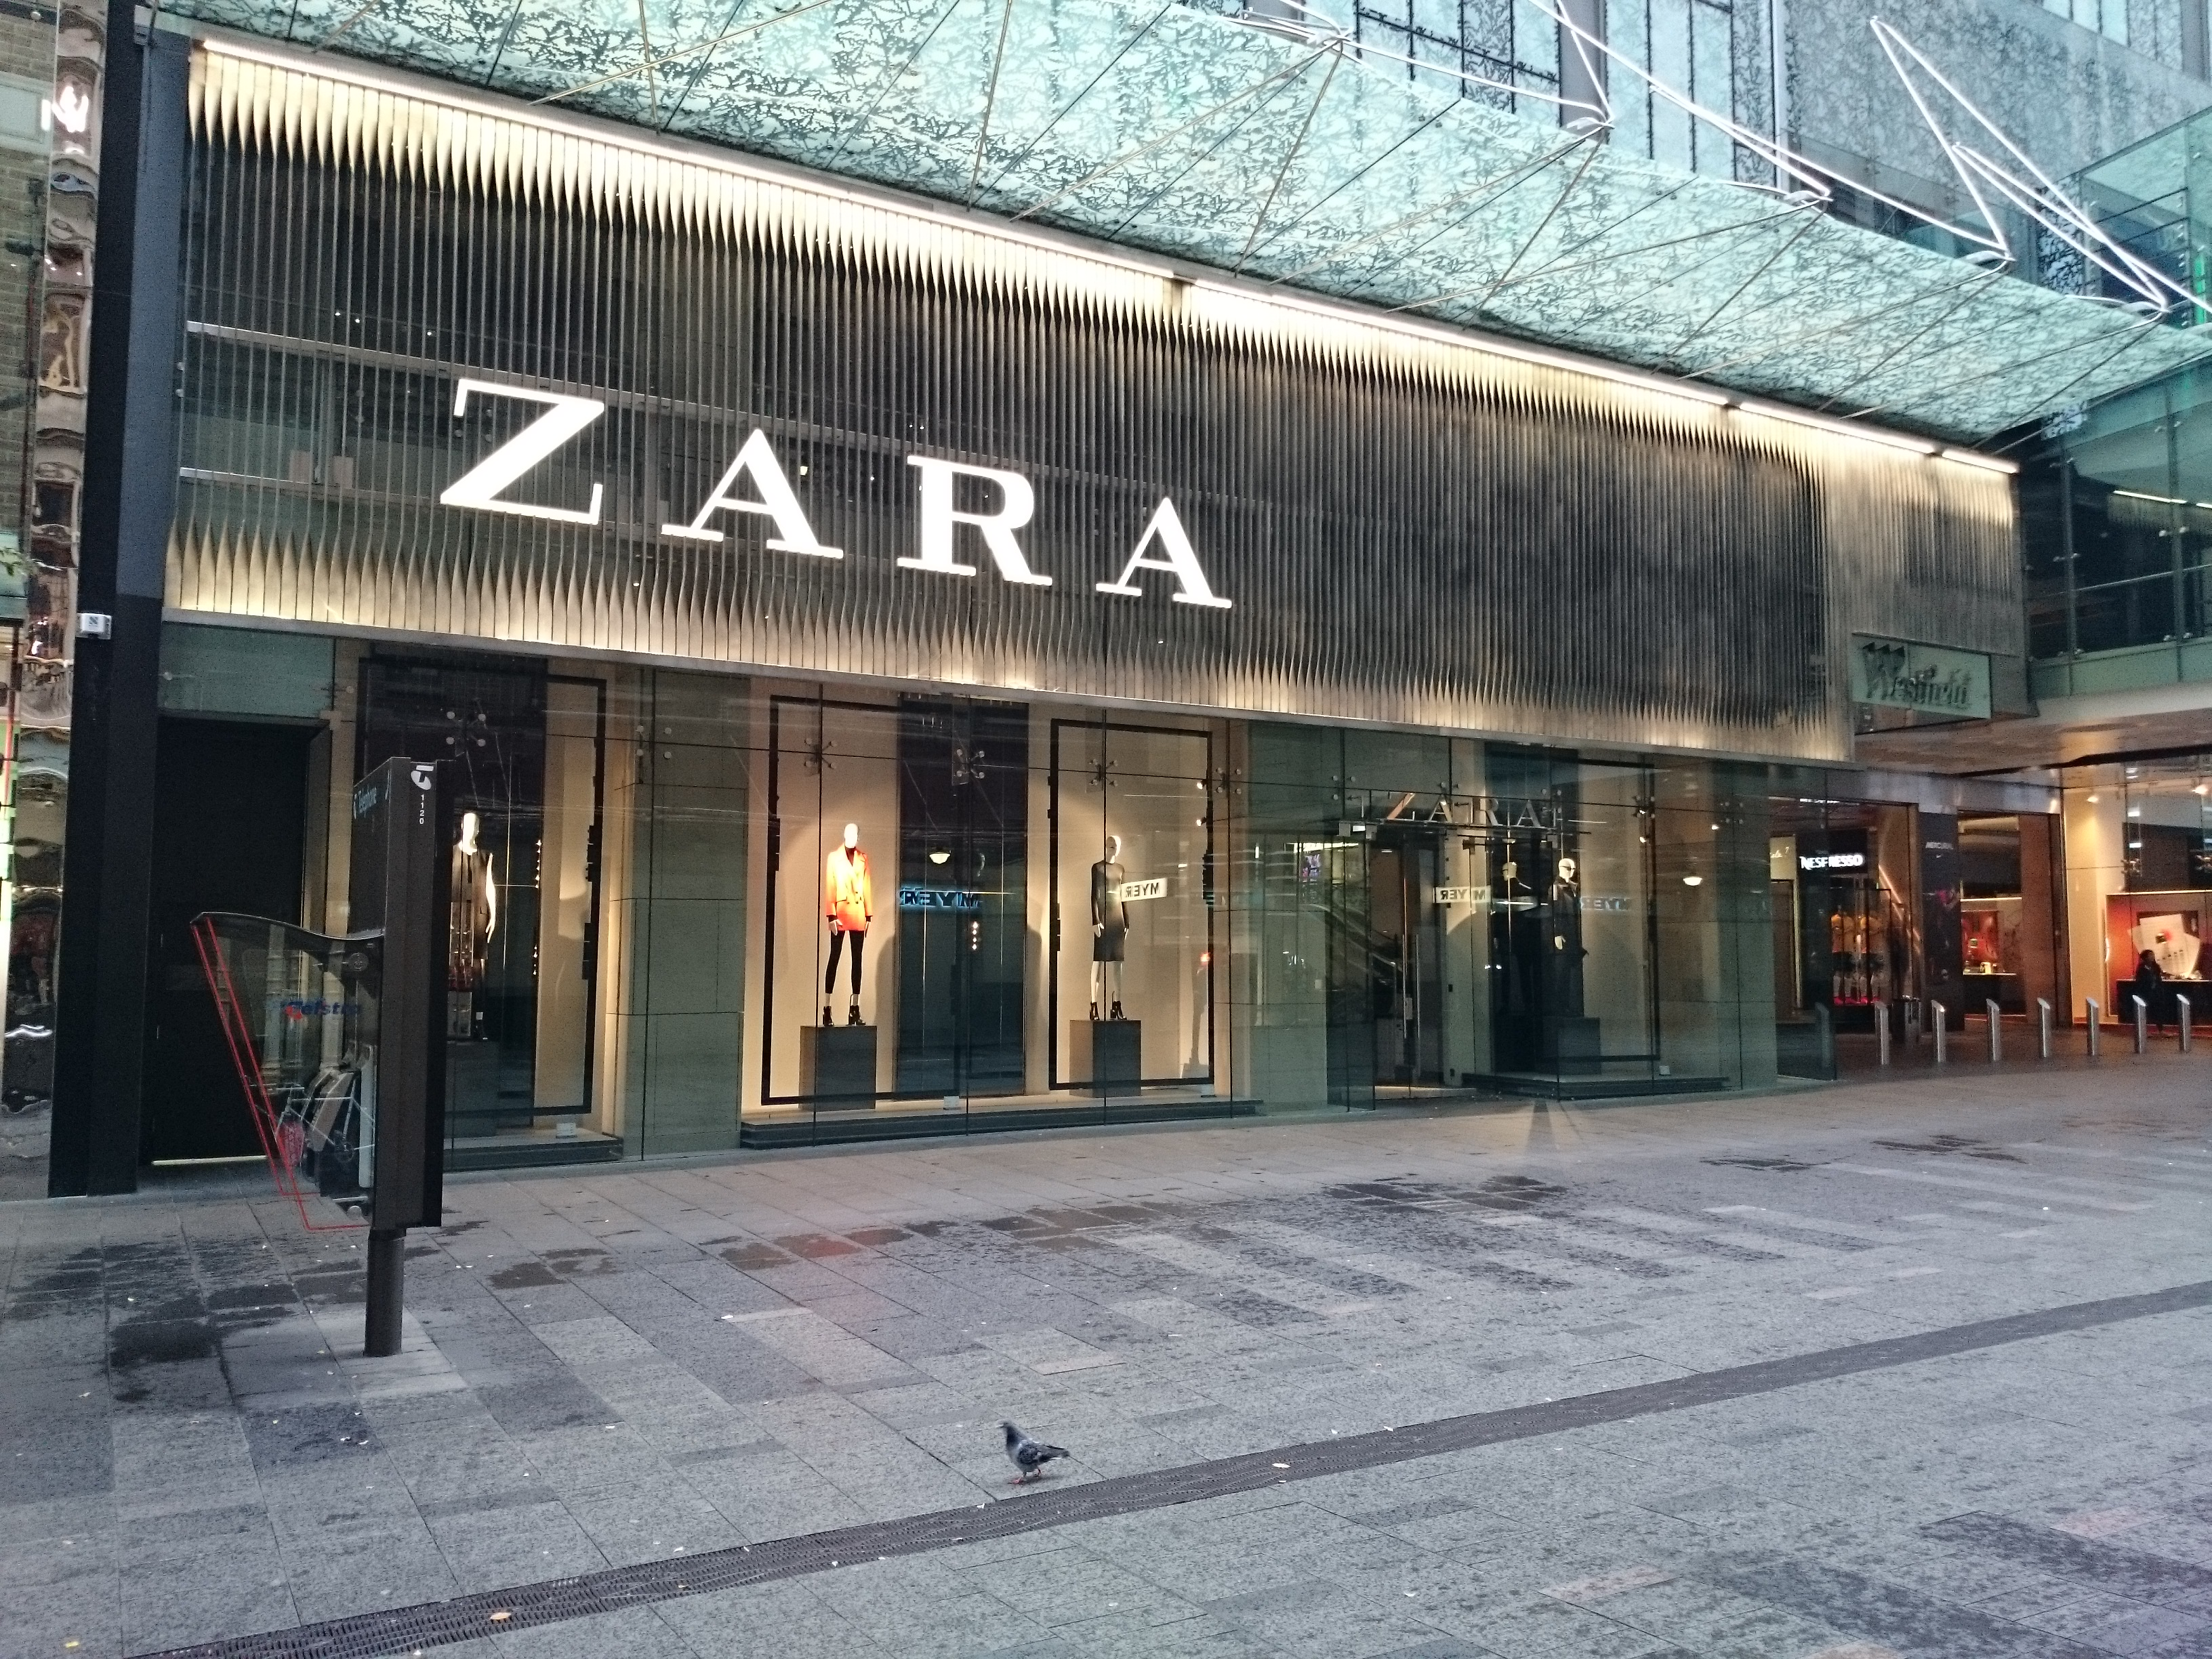 To create ZARA review we checked manga-hub.tk reputation at lots of sites, including Siteadvisor and MyWOT. Unfortunately, we did not find sufficient information whether Zara is safe for children or does not look fraudulent.